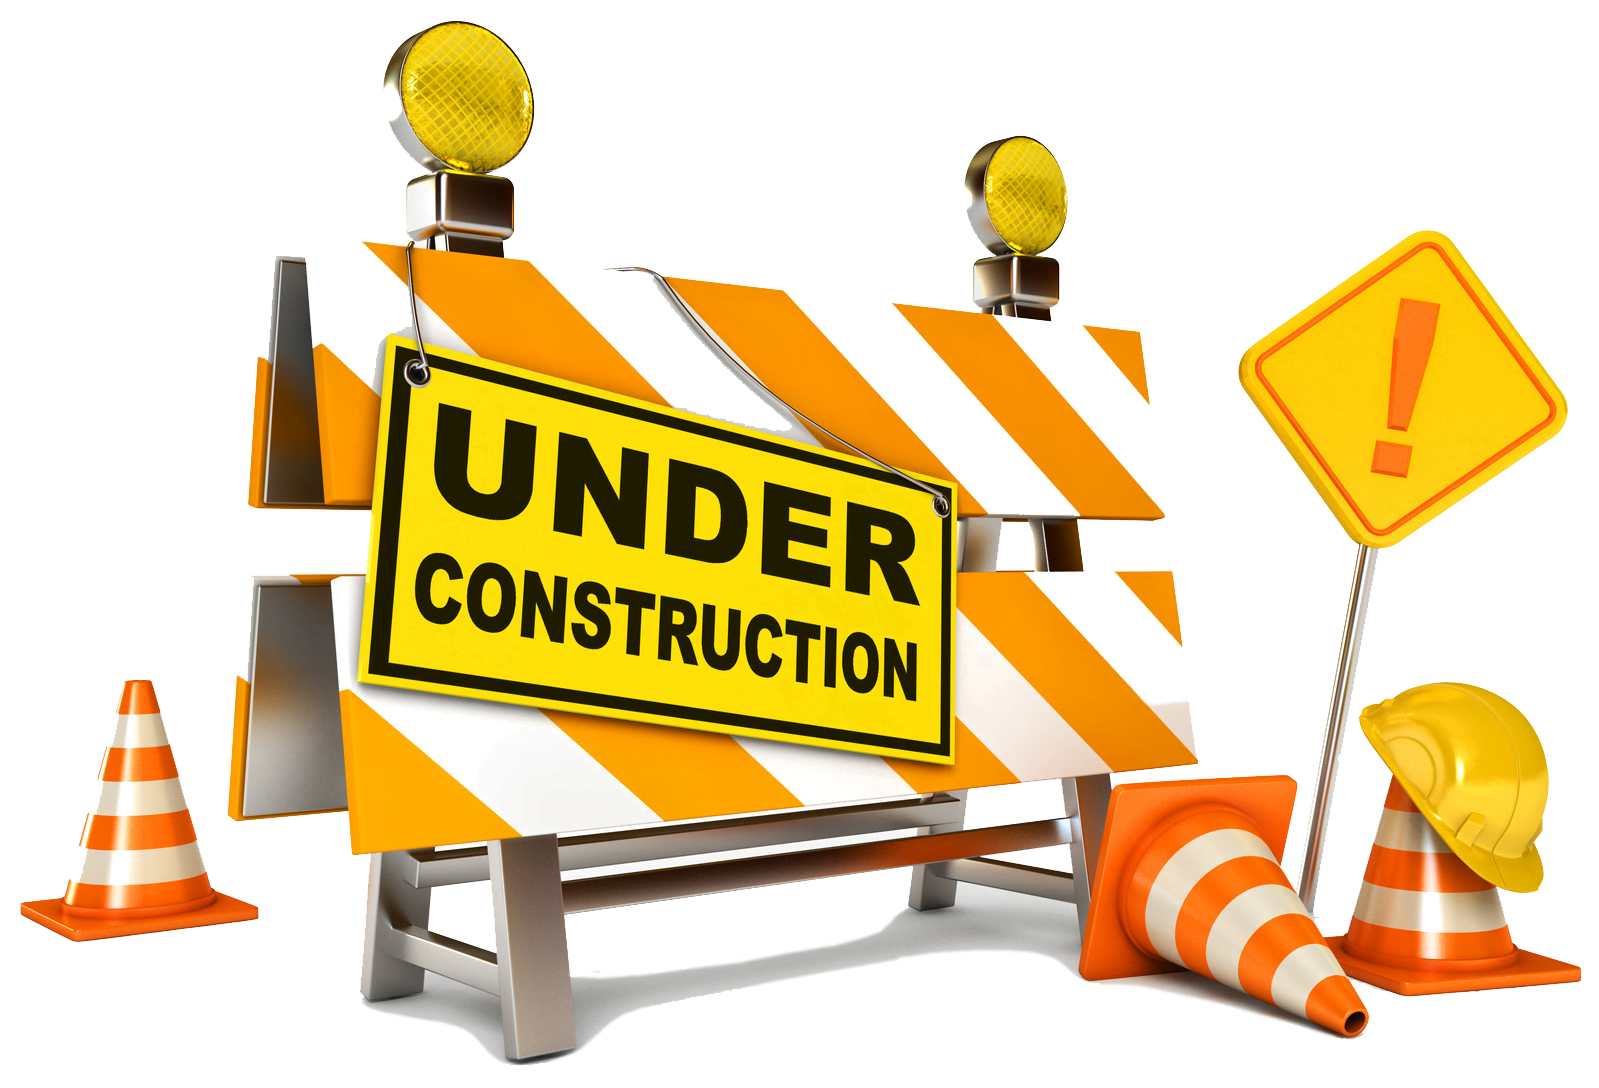 under_construction_PNG68